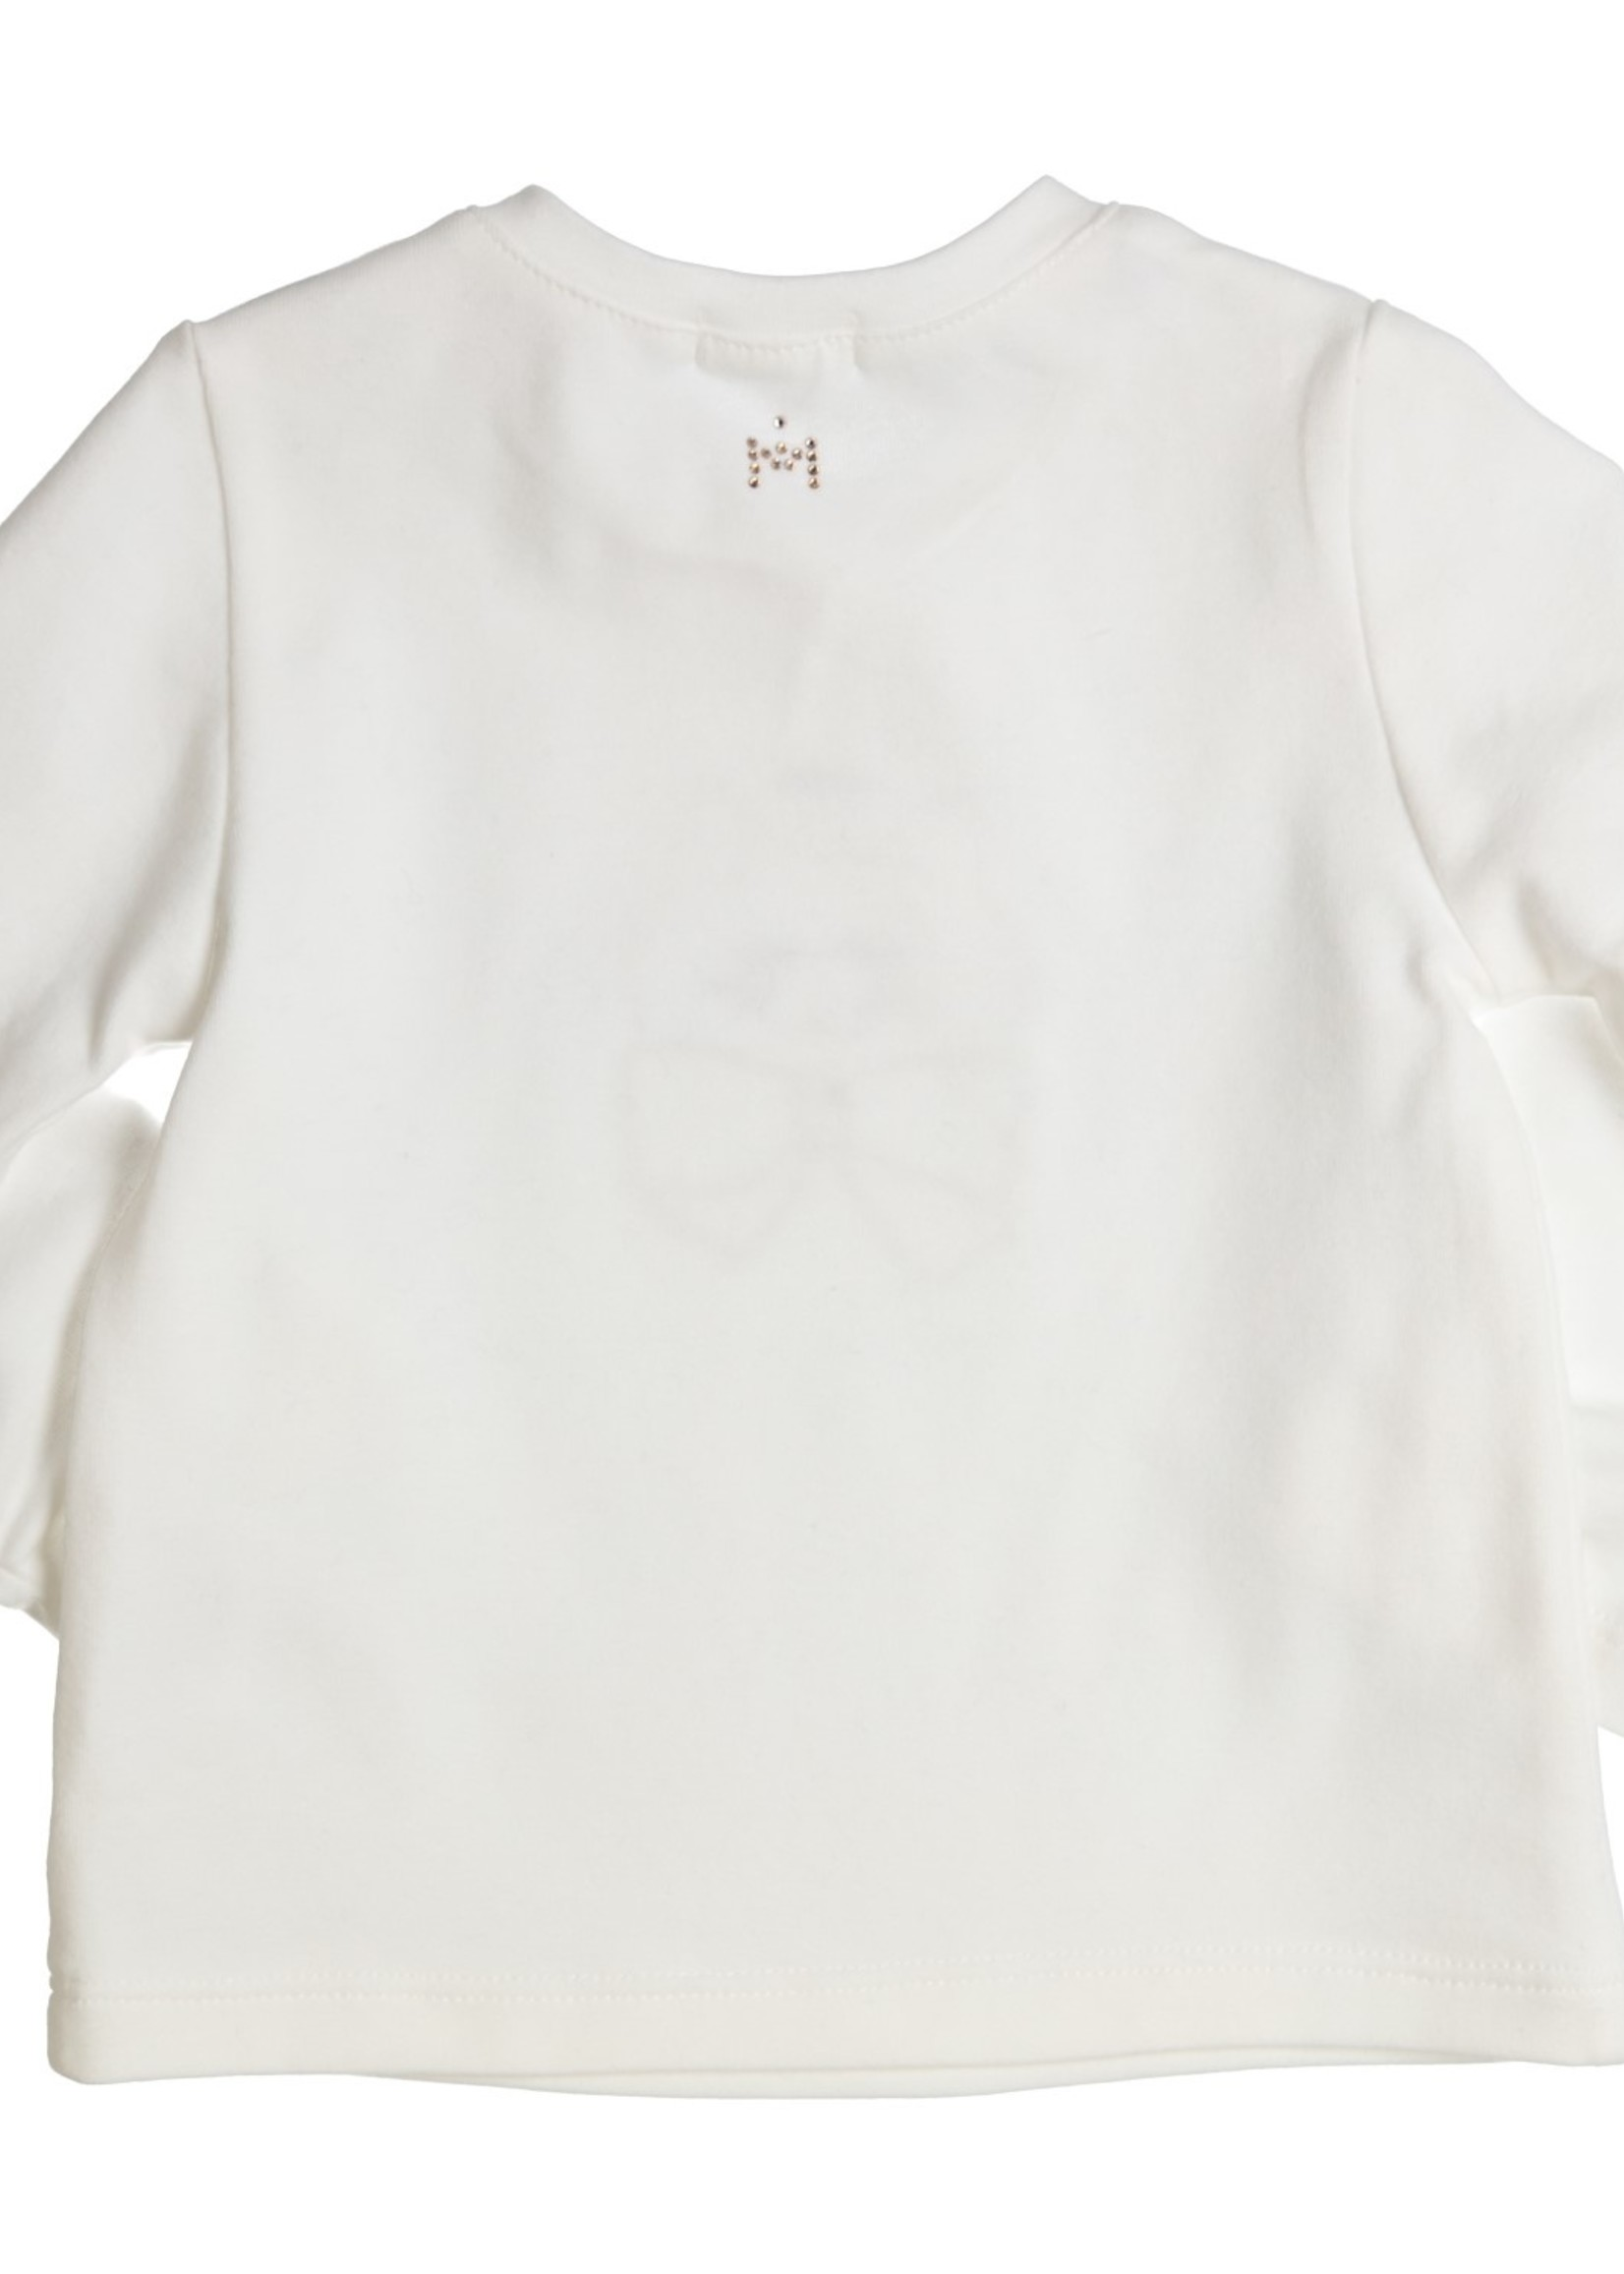 Gymp Gymp longsleeve embroidery MEOW off white